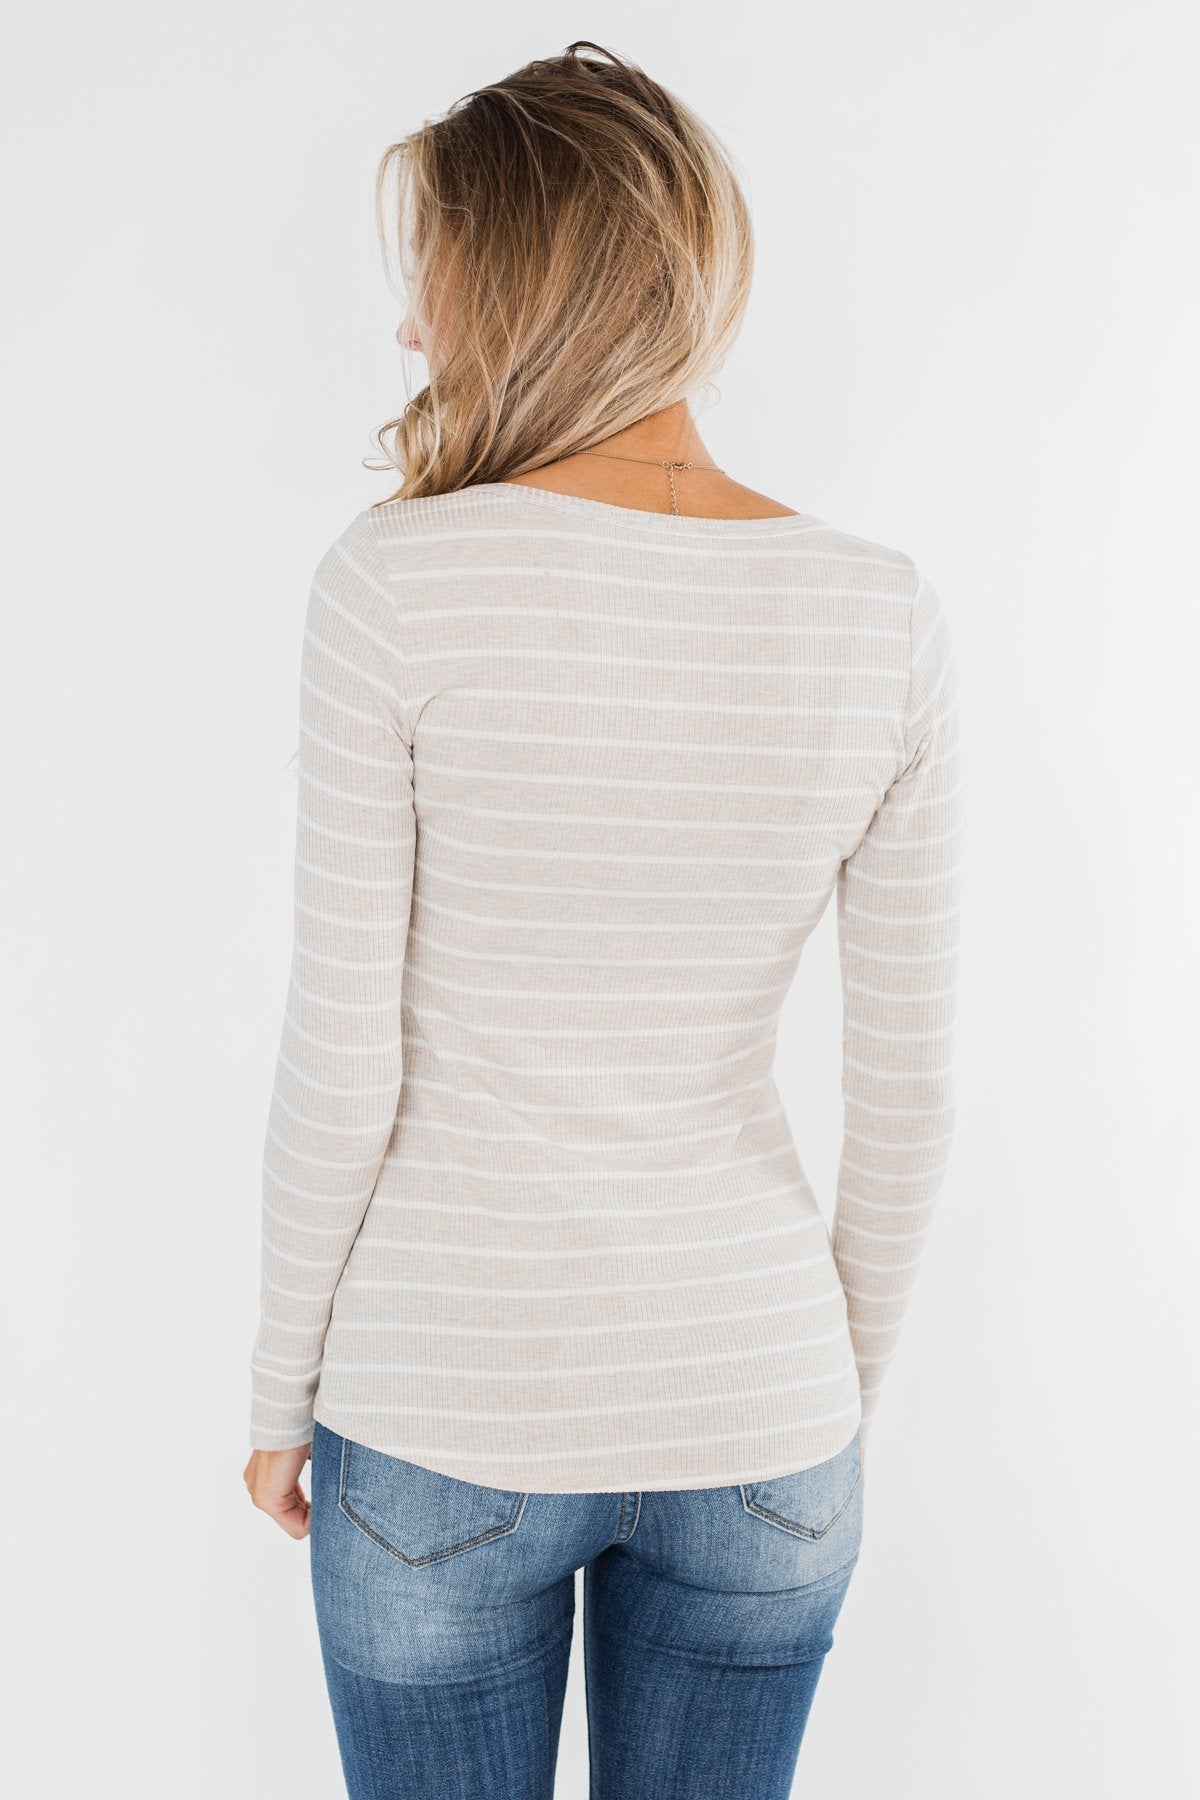 Essential 5-Button Henley Top- Heathered Oatmeal & Ivory